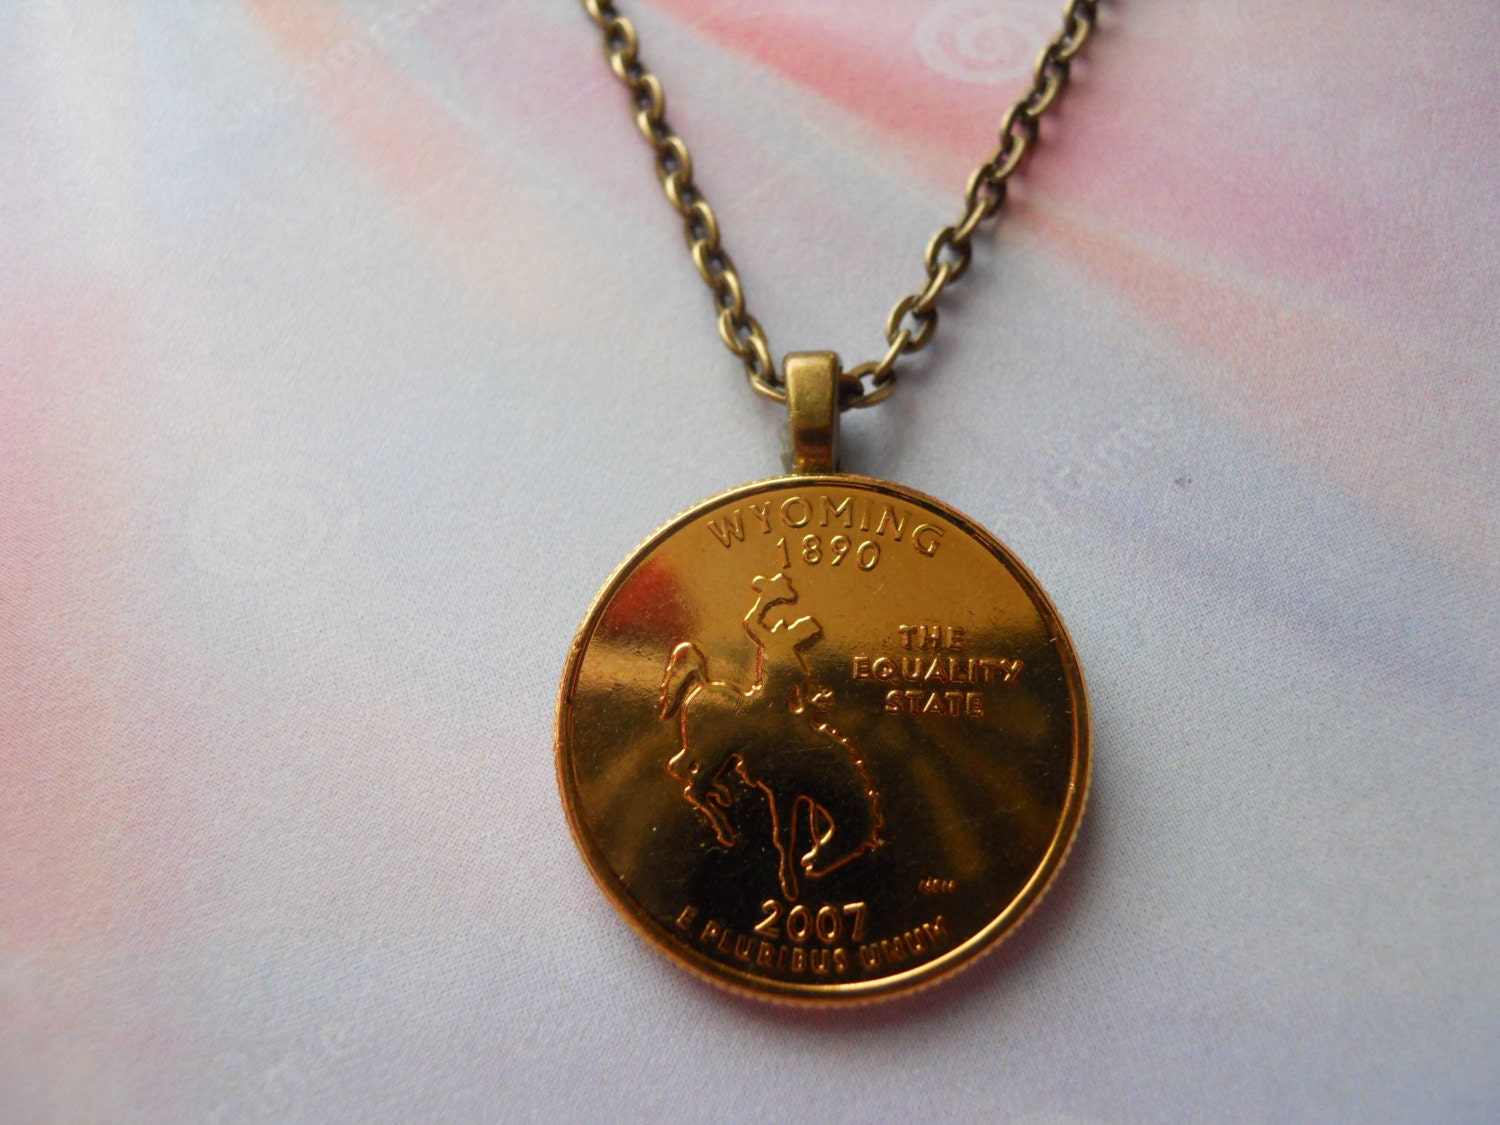 Wyoming United States Gold Colored Quarter Coin Necklace